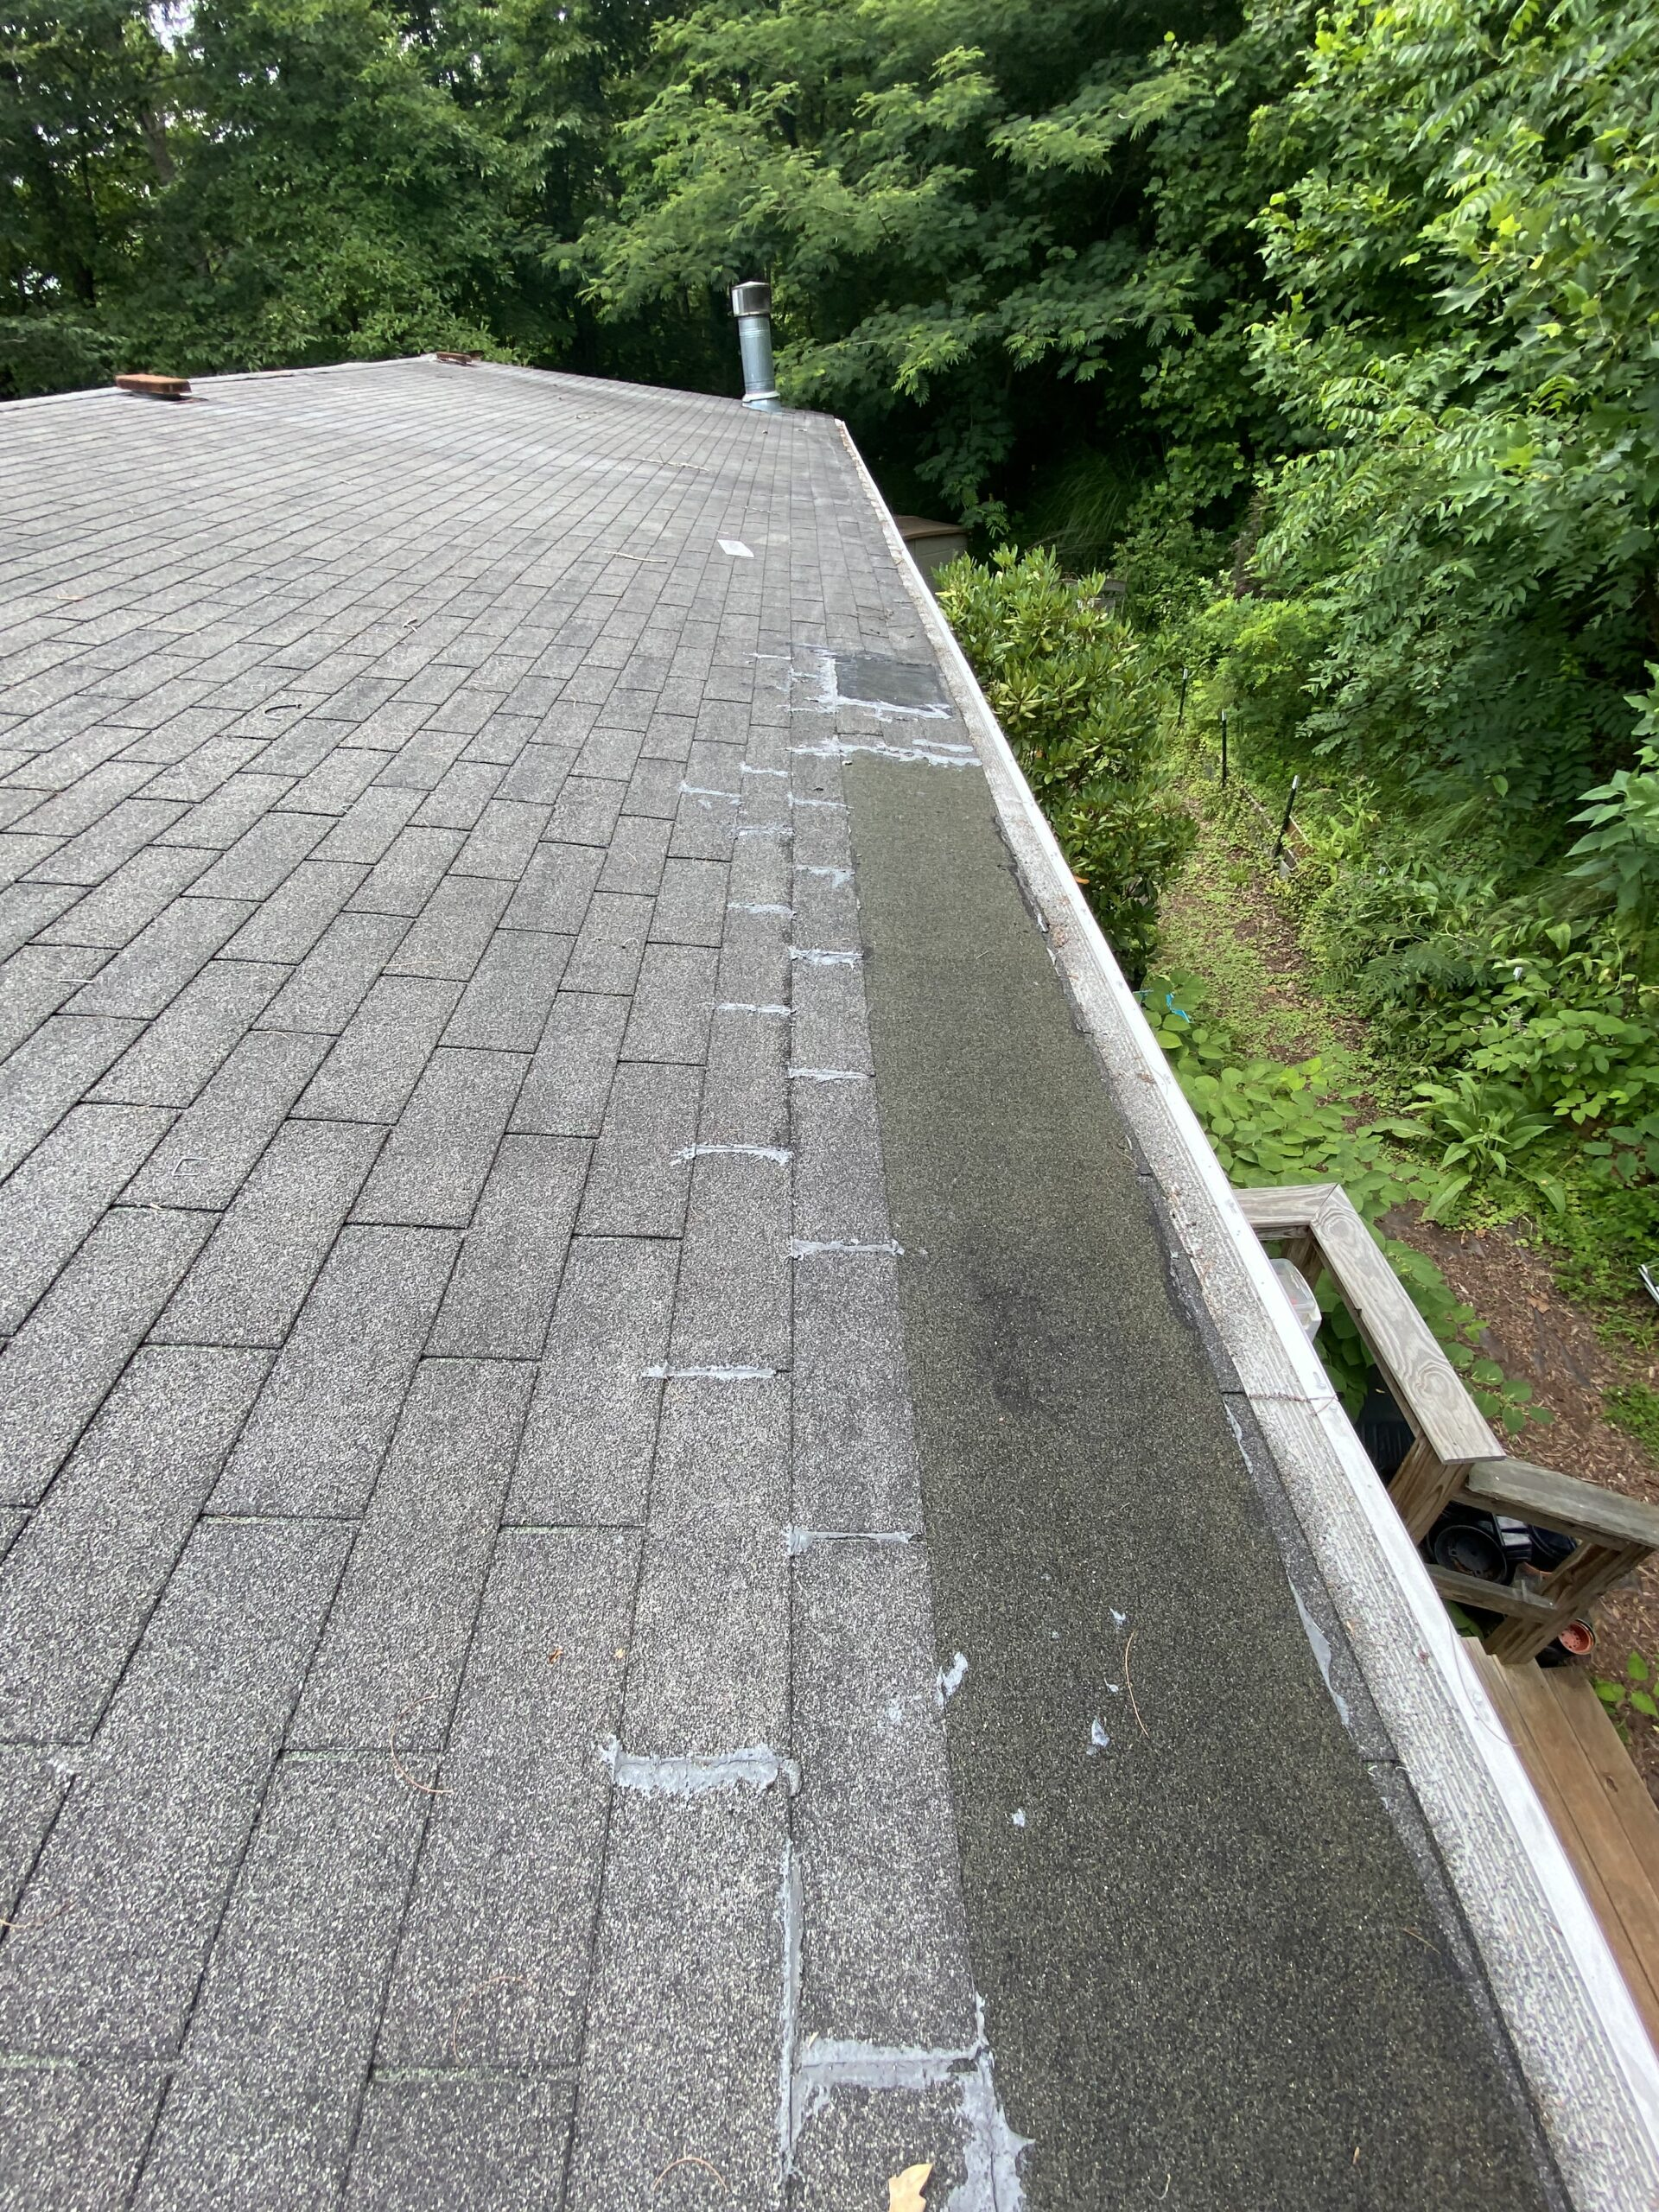 this is a picture of the edge of a roof with a sheet of ice and water shield over the shingles